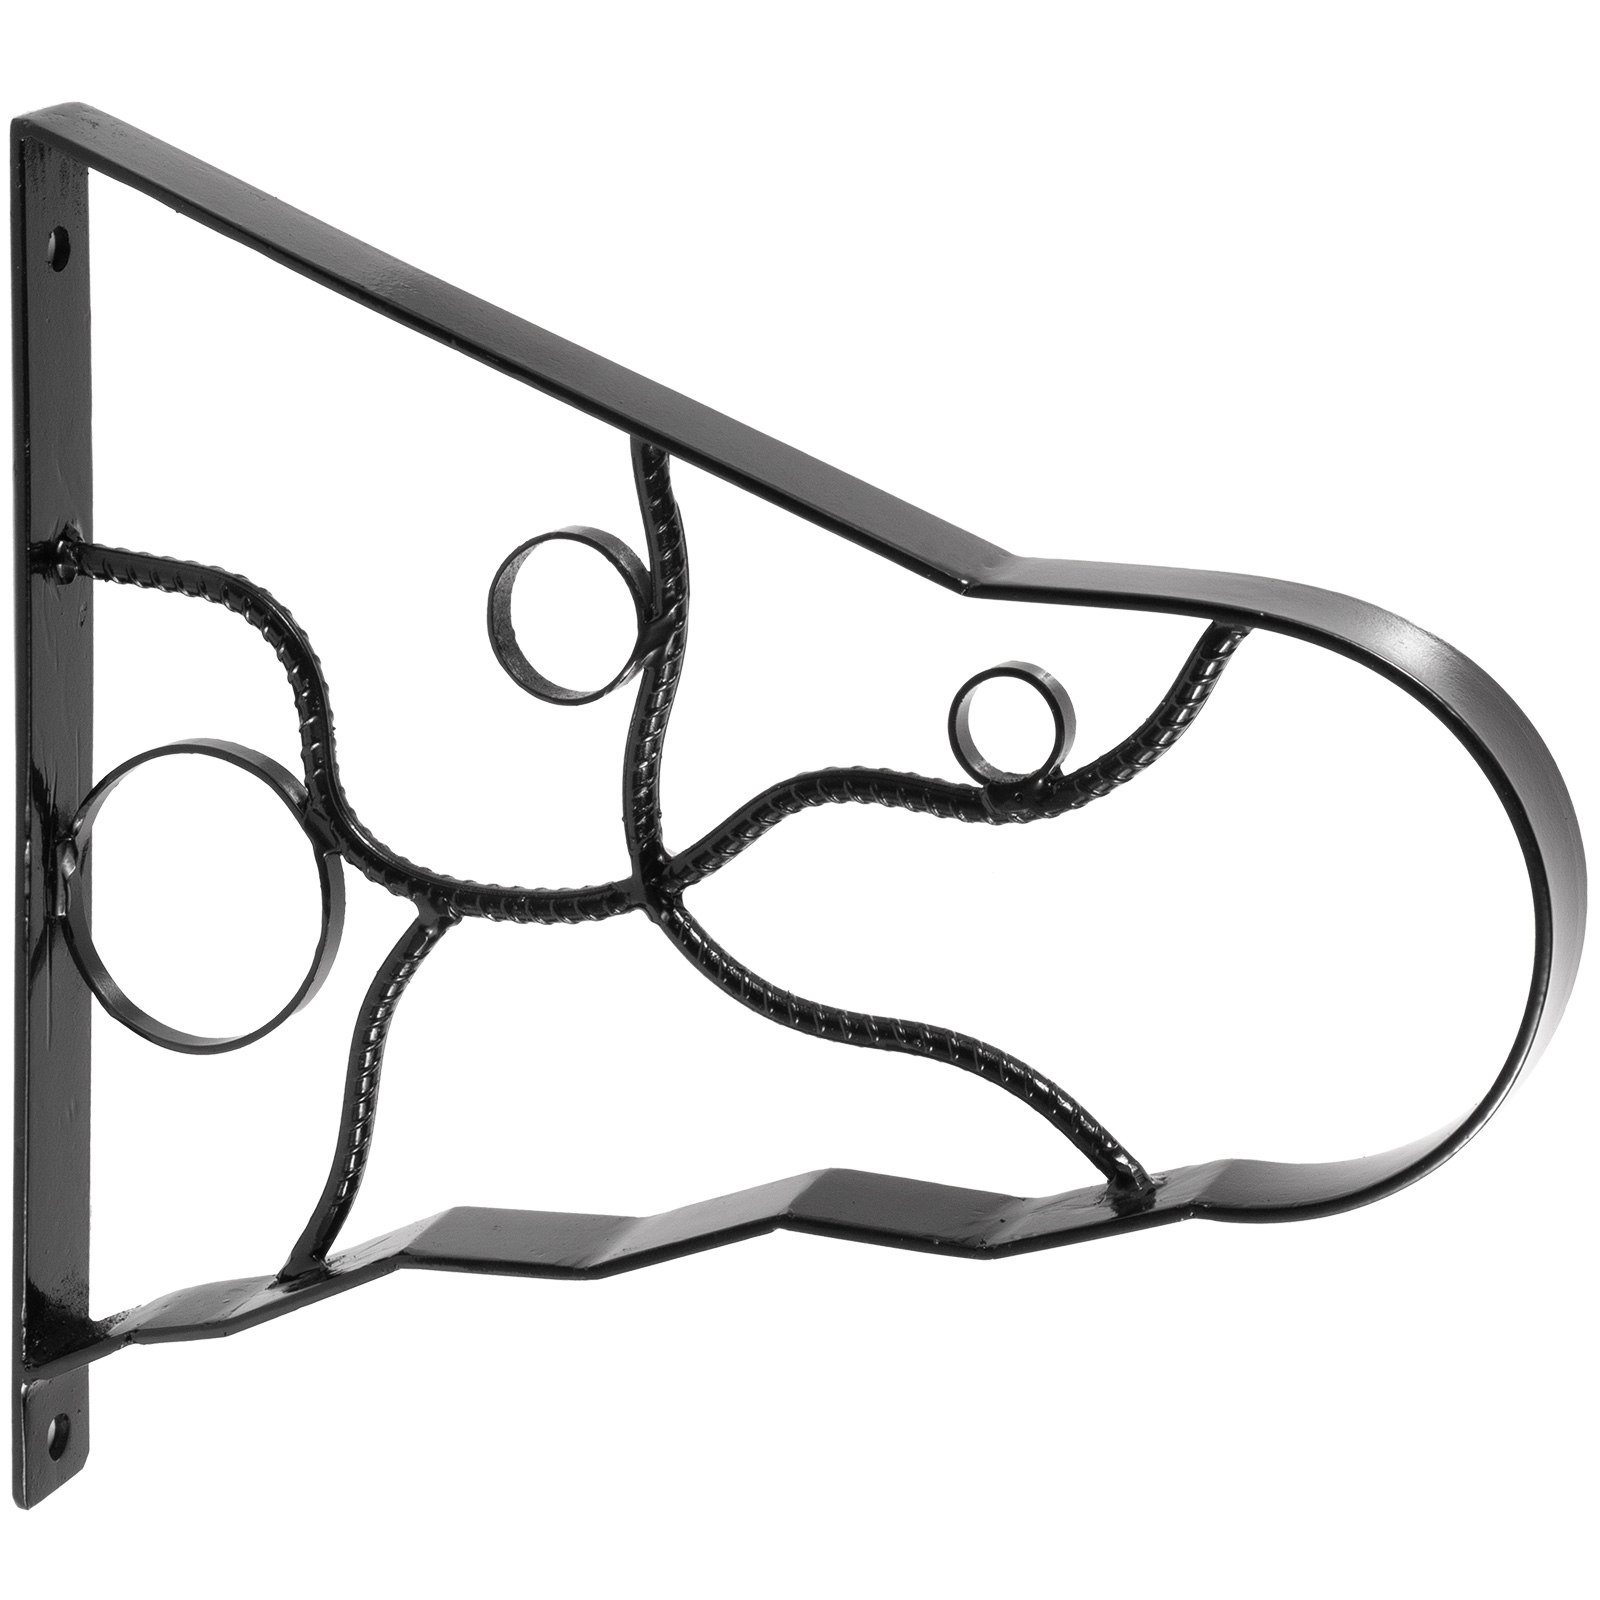 Handrails-for-Outdoor-Step-Wrought-Iron-Handrail-20-034-Length-Porch-Deck-Railing thumbnail 72